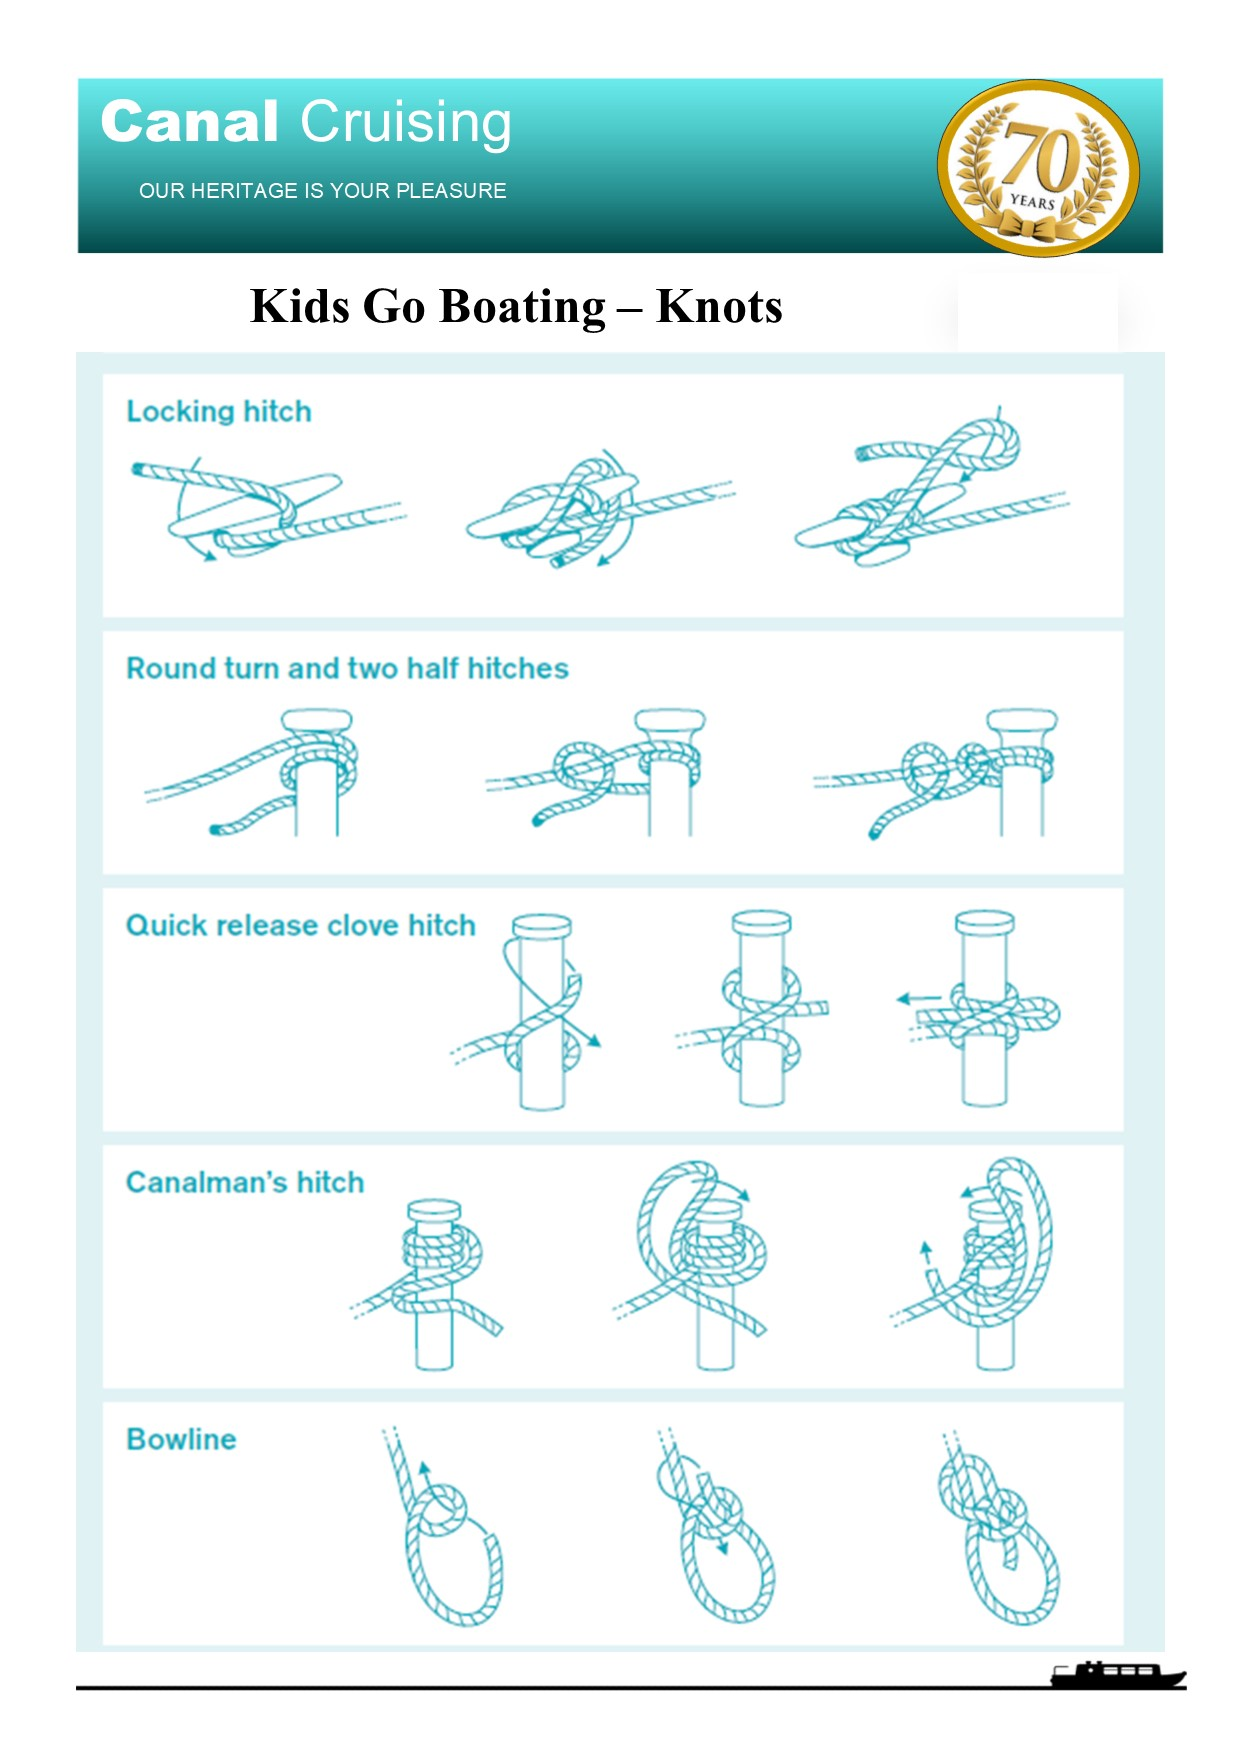 Kids go boating knots